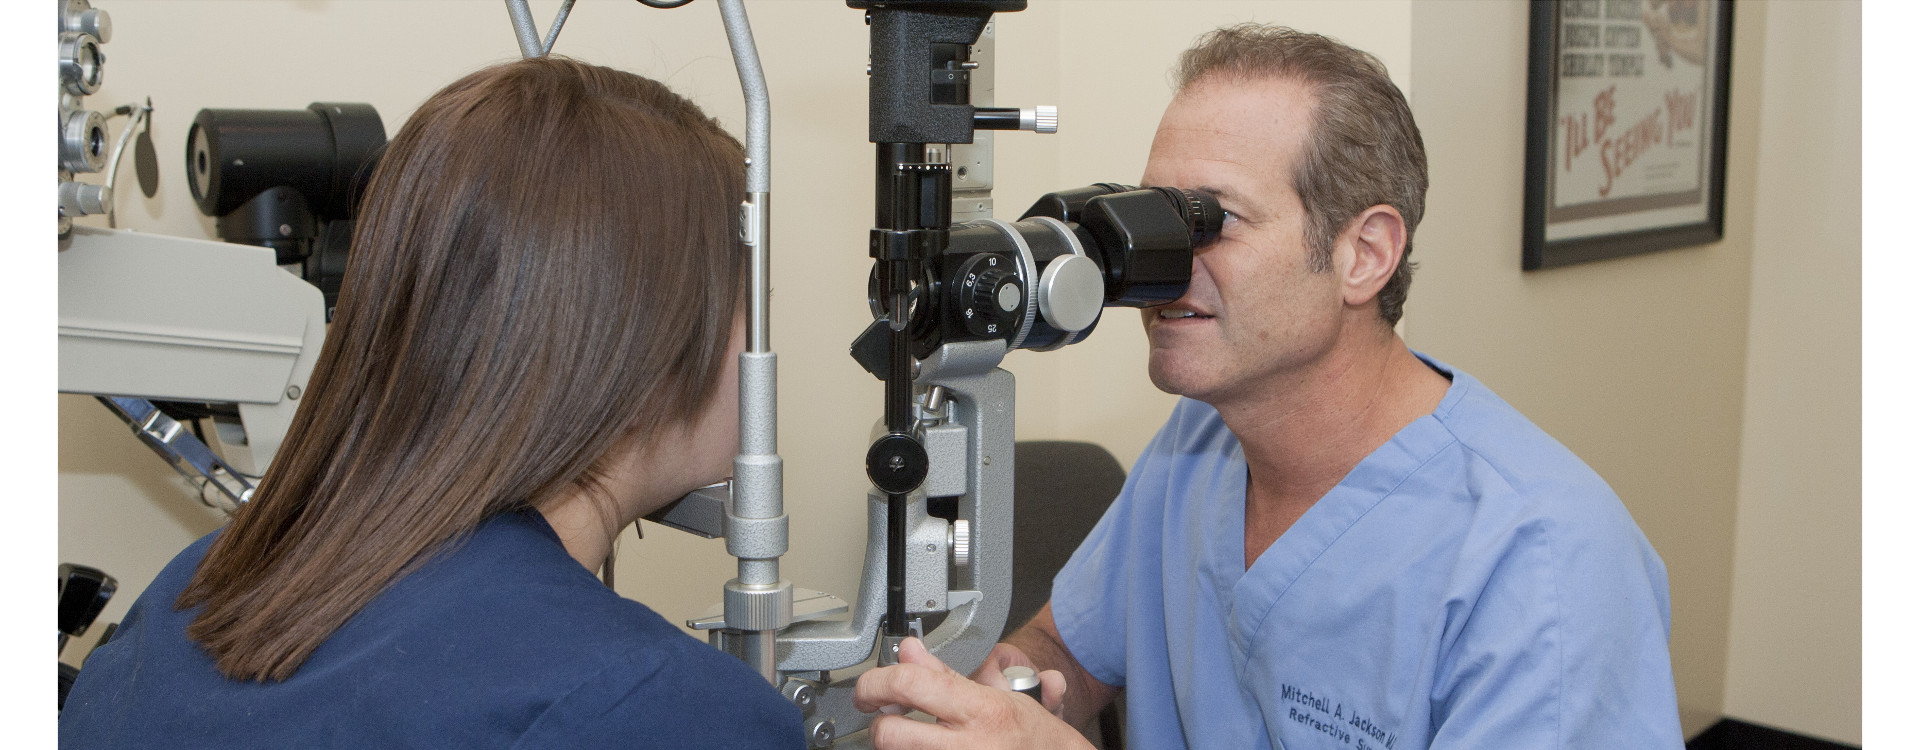 Laser Eye Surgery Advantages